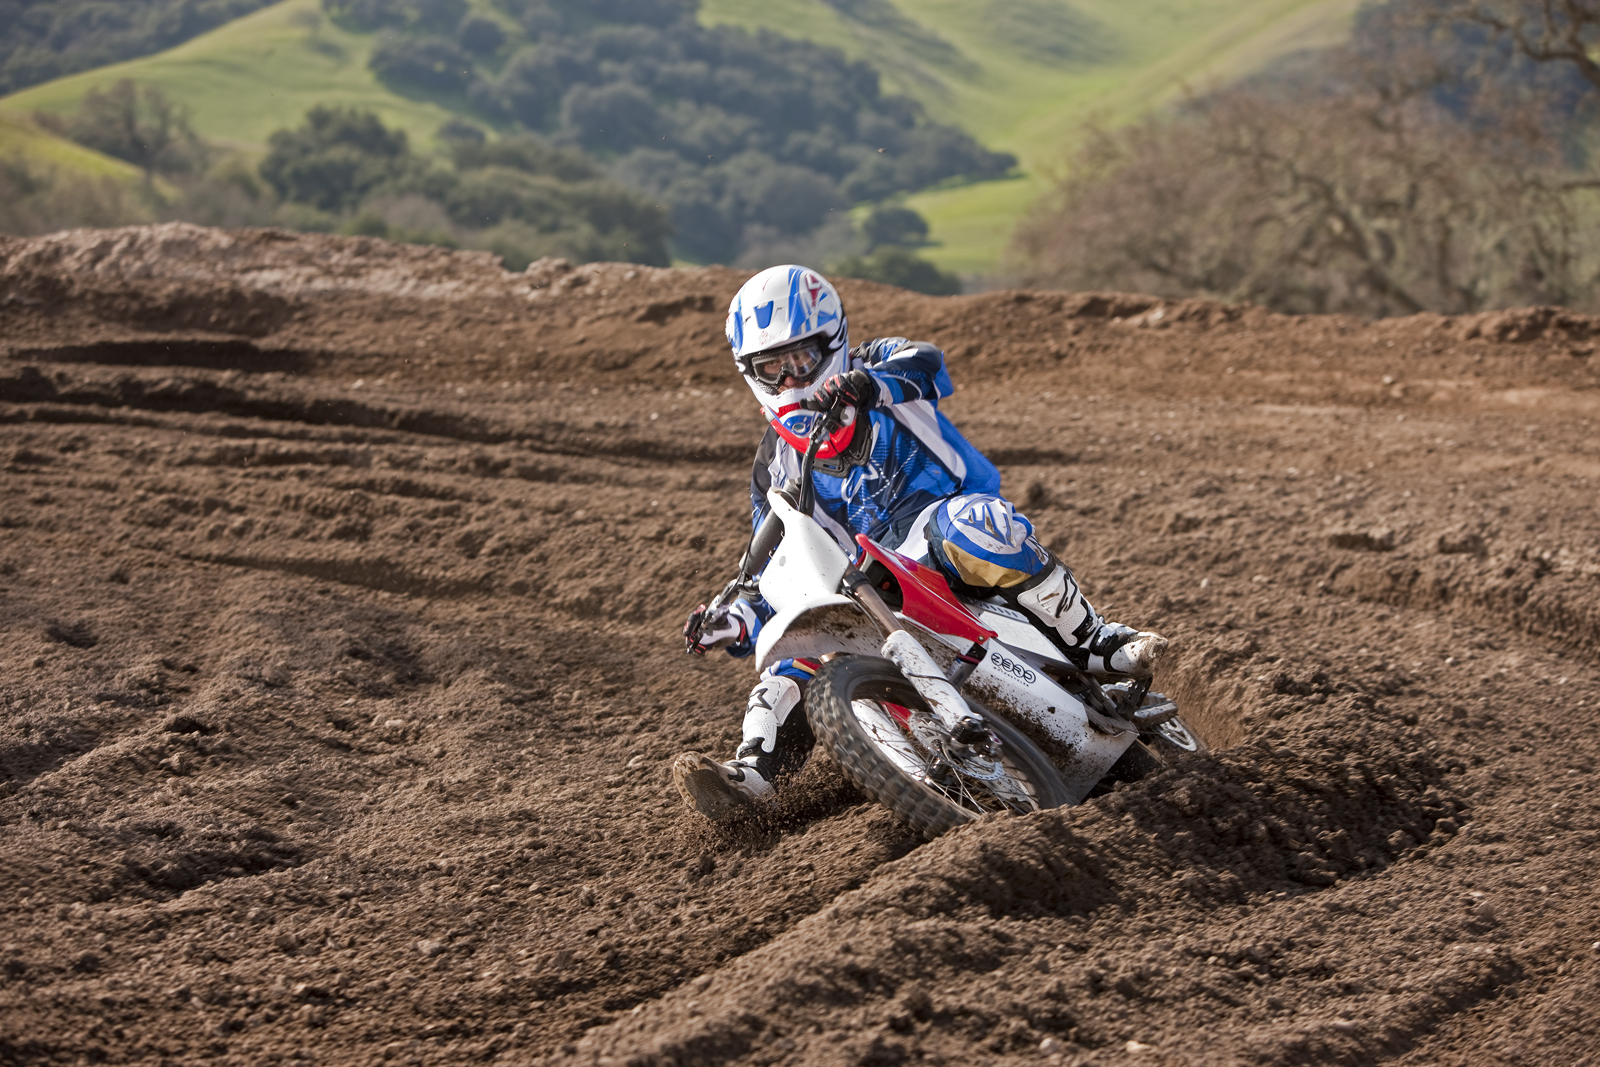 2010 Zero MX Electric Motorcycle: Zaca Station - Speed through Ruts